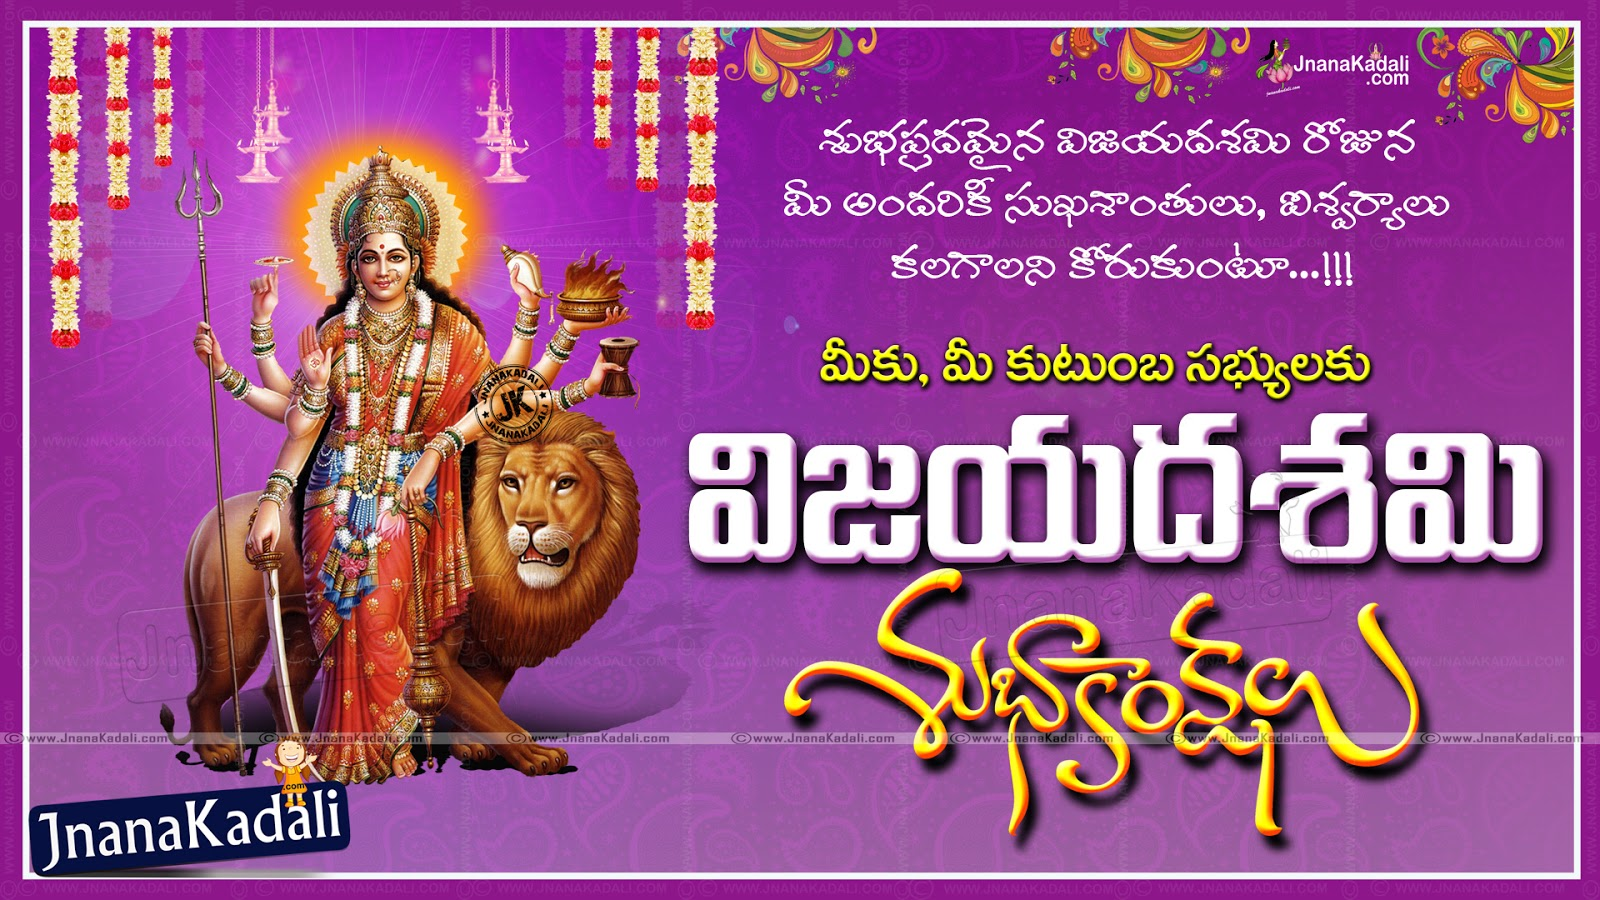 dussehra essay in telugu Vijayadashami (iast: vijayadaśamī, pronounced [ʋɪʝəjəðəʃmɪ]]) also known as dasara, dusshera or dussehra is a major hindu festival celebrated at the end of navratri every year it is observed on the tenth day in the hindu calendar month of ashvin , the seventh month of the hindu luni-solar calendar, which typically falls in the gregorian months of september and october.